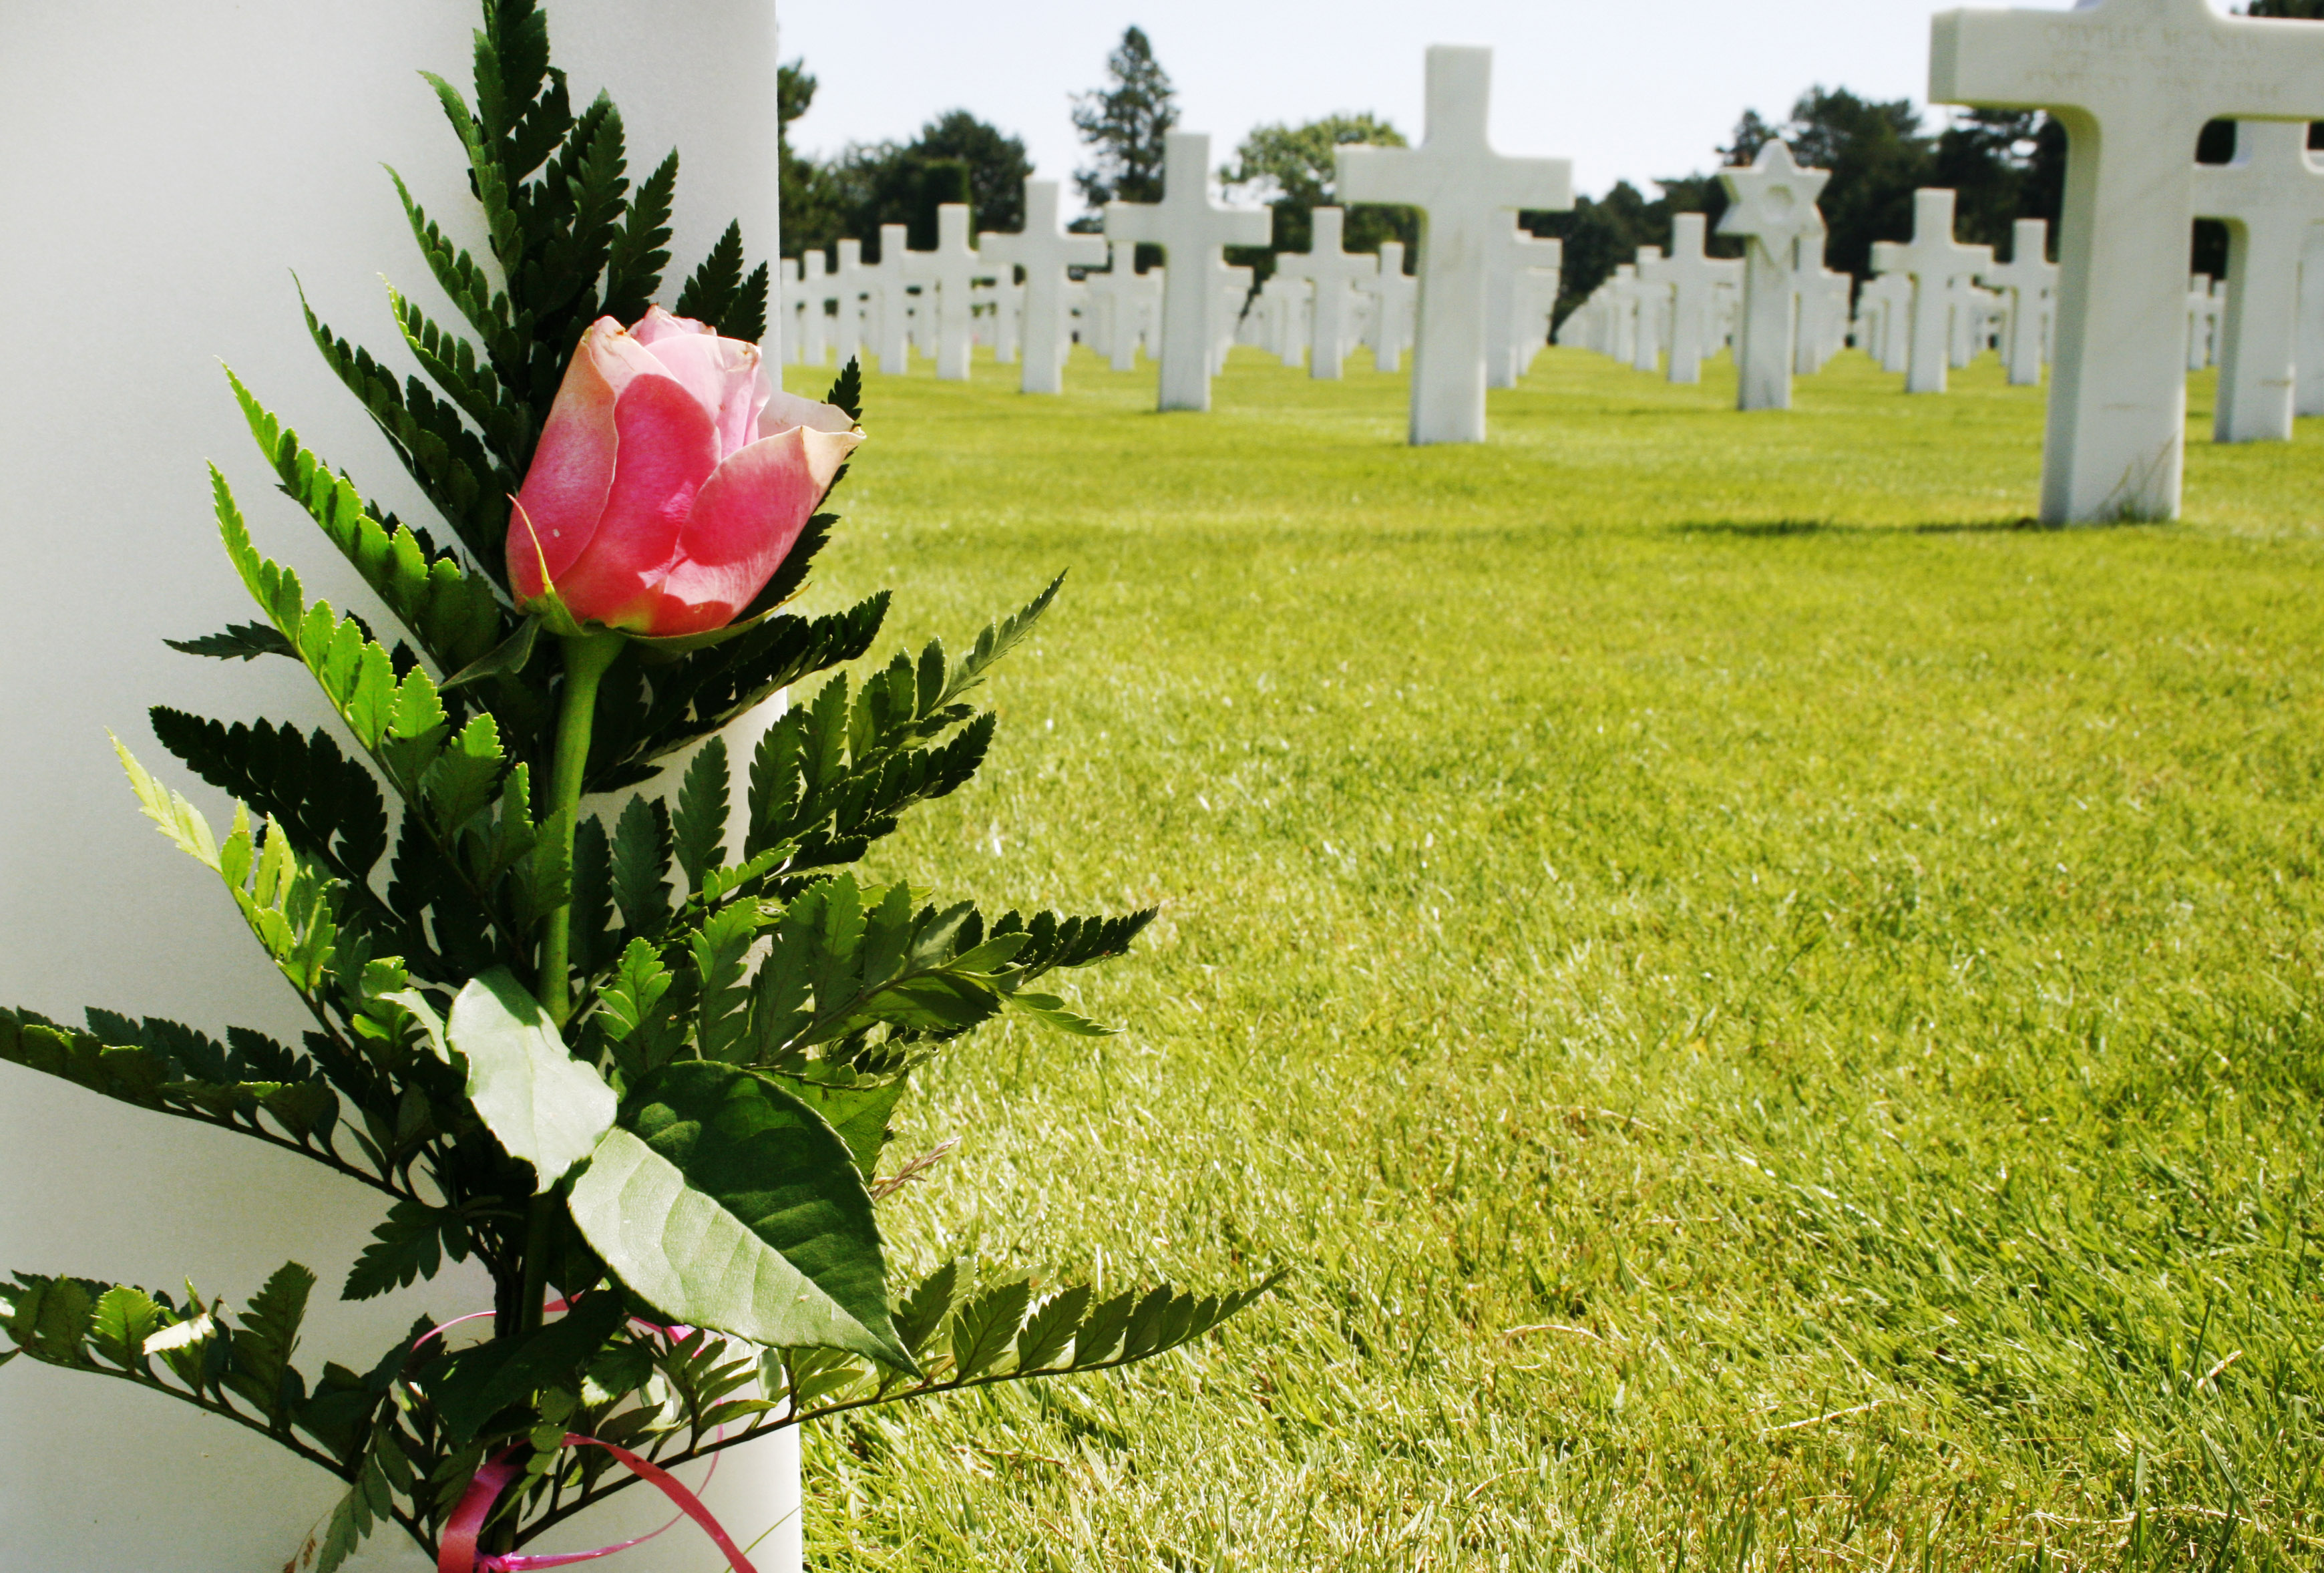 Flower at grave, Army, Graveyard, Tombstone, Tomb, HQ Photo